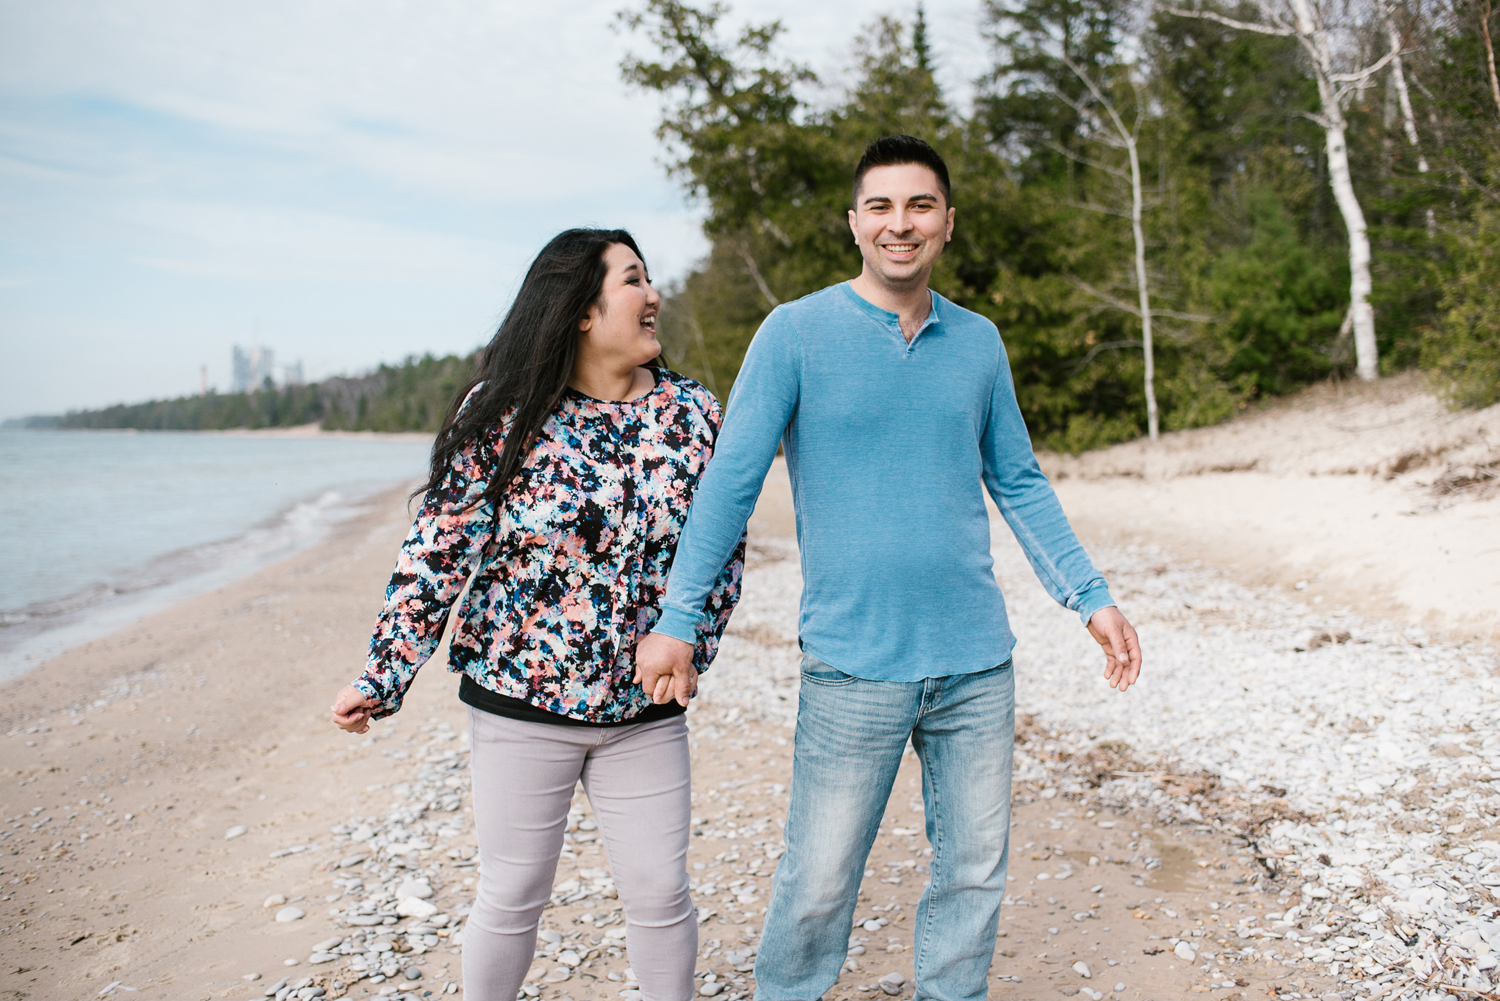 charlevoix-michigan-beach-engagement-session-sydney-marie-northern-michigan-photographer (48).jpg